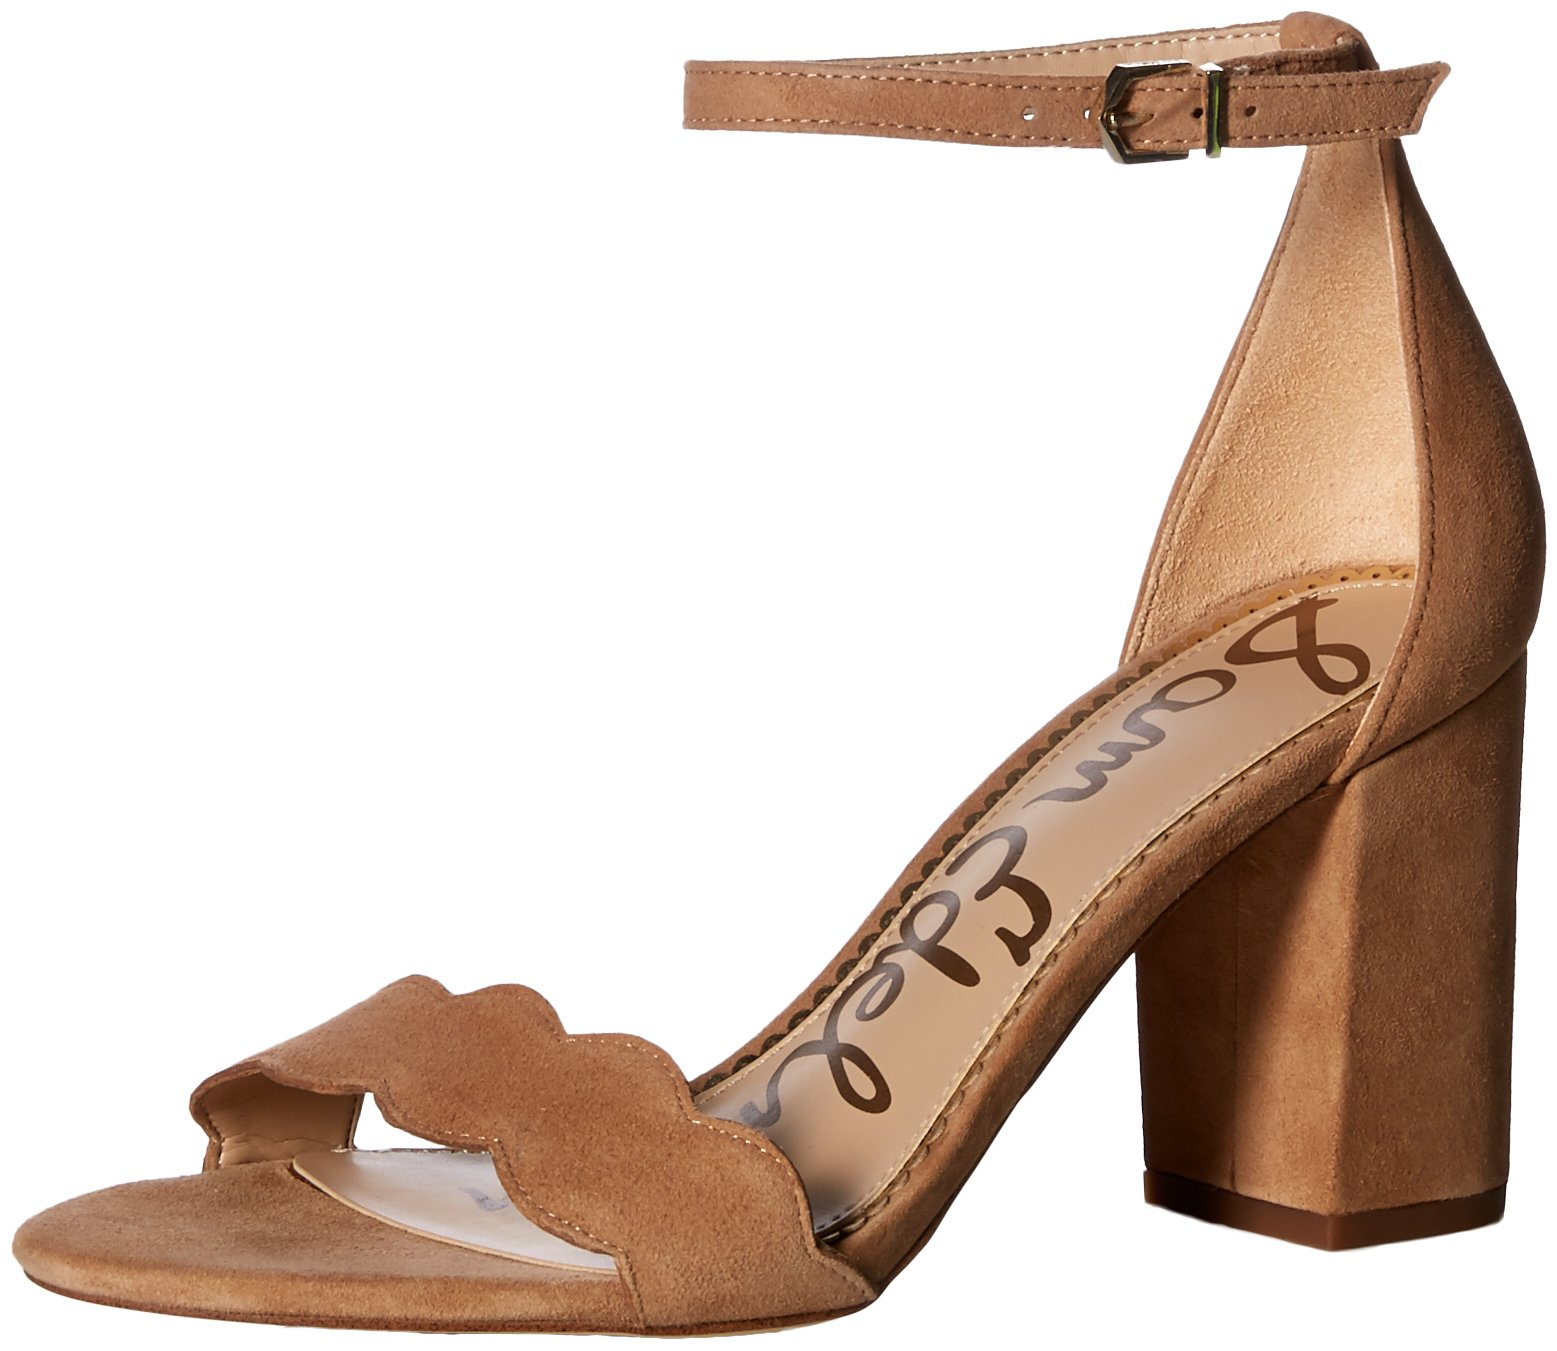 Sam Edelman Women's Odila Heeled Sandal, Golden Caramel Suede, 7 M US by Sam Edelman